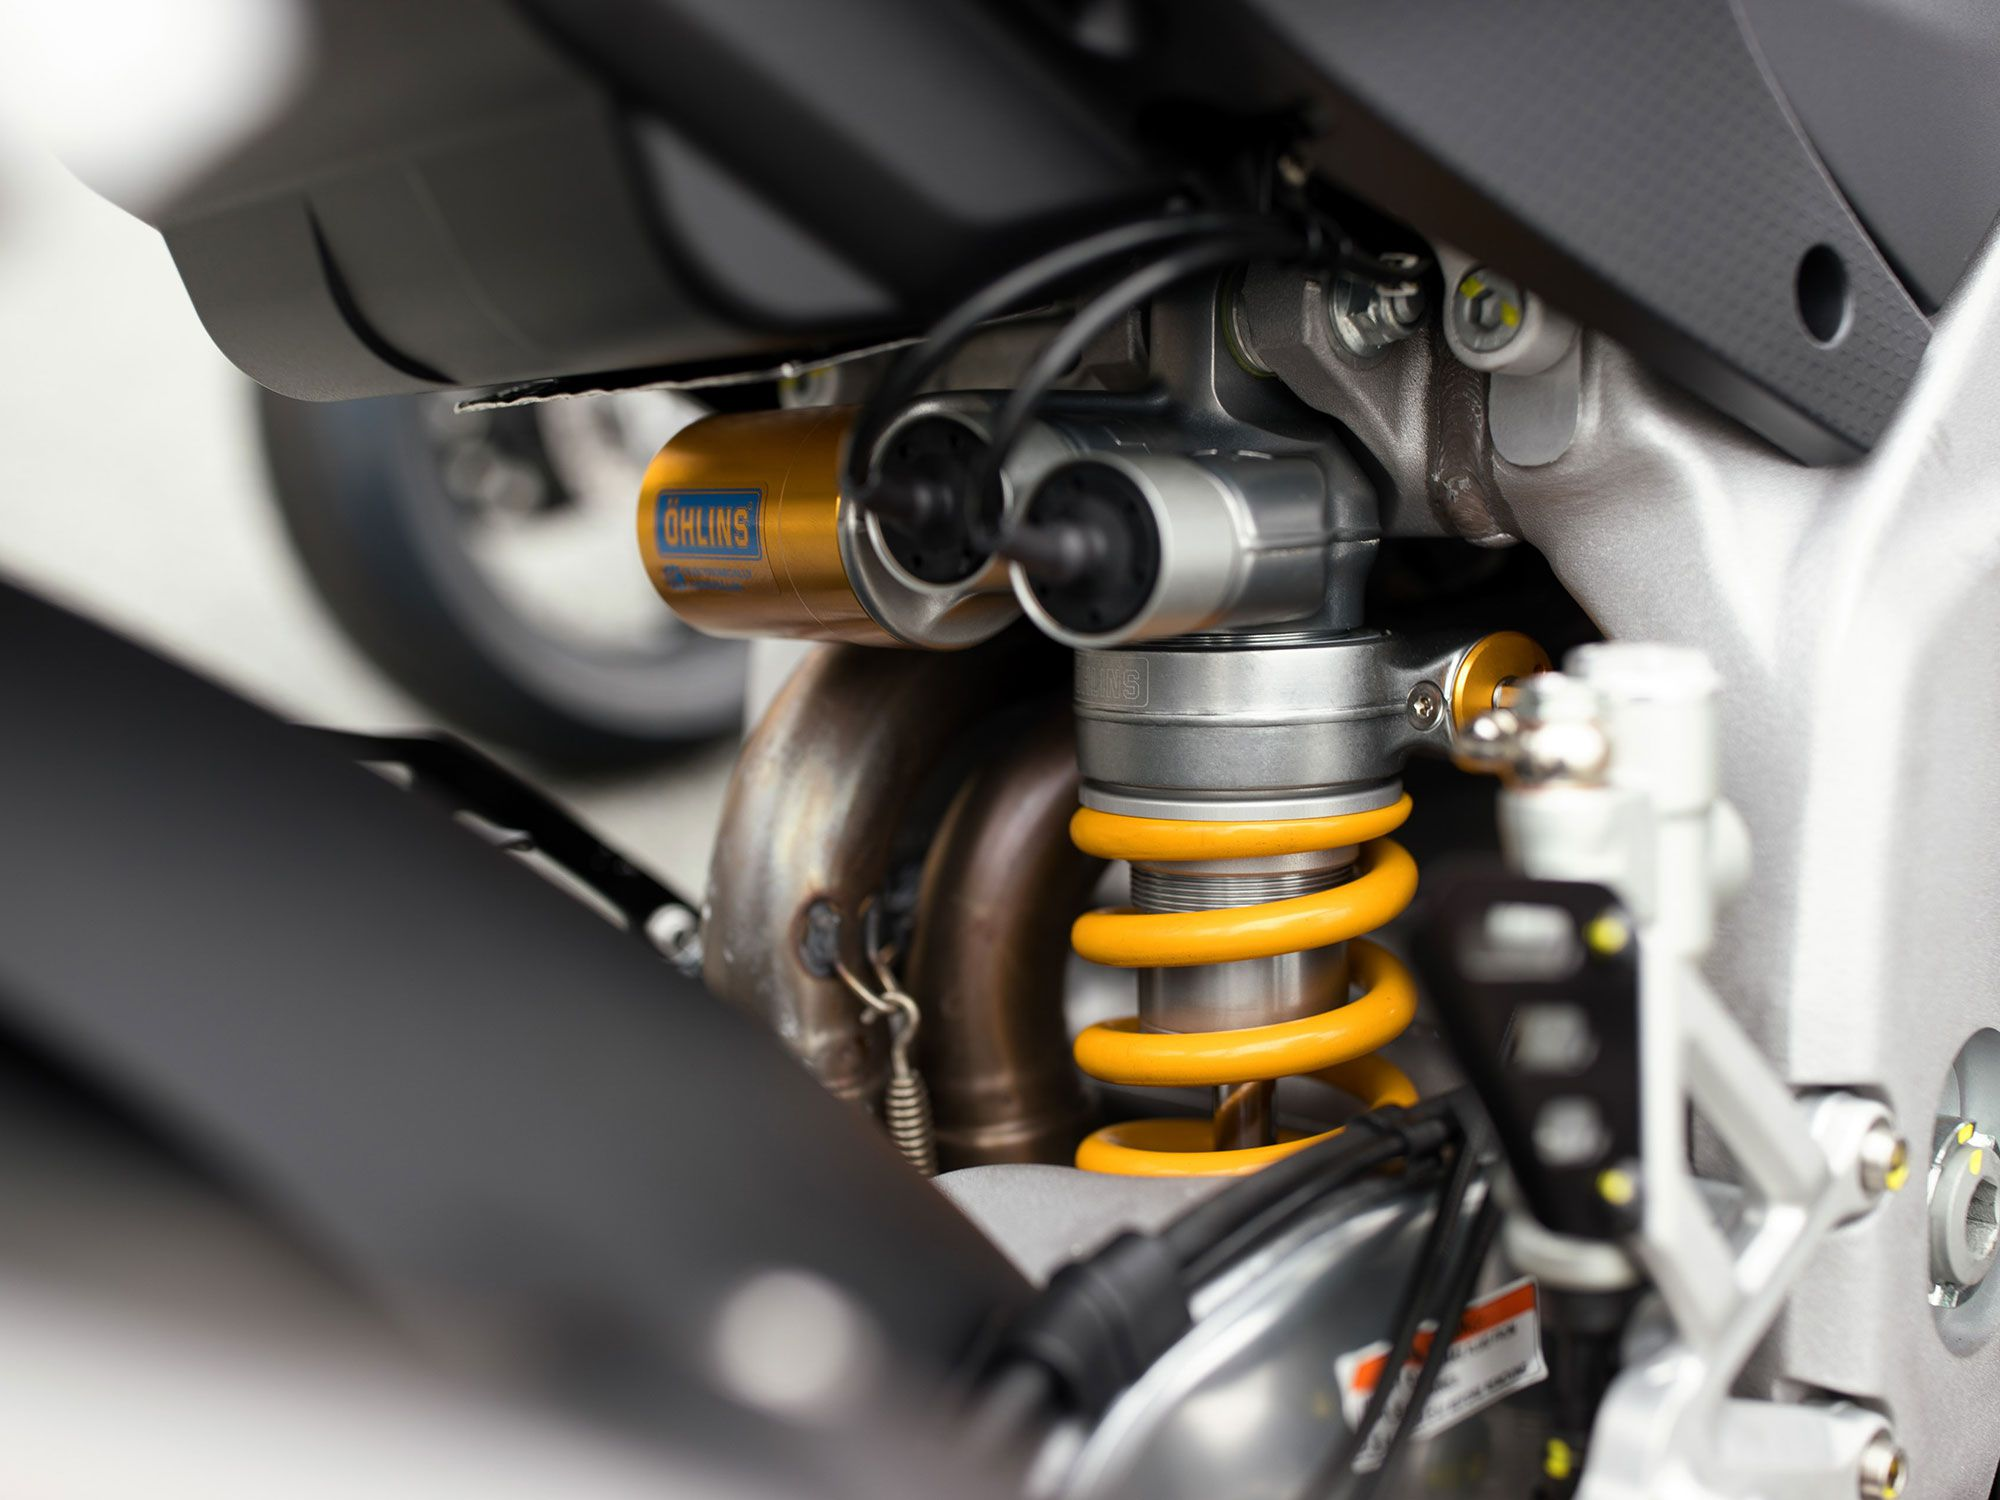 The Factory's semi-active Öhlins suspenders help take the guesswork out of suspension setup.